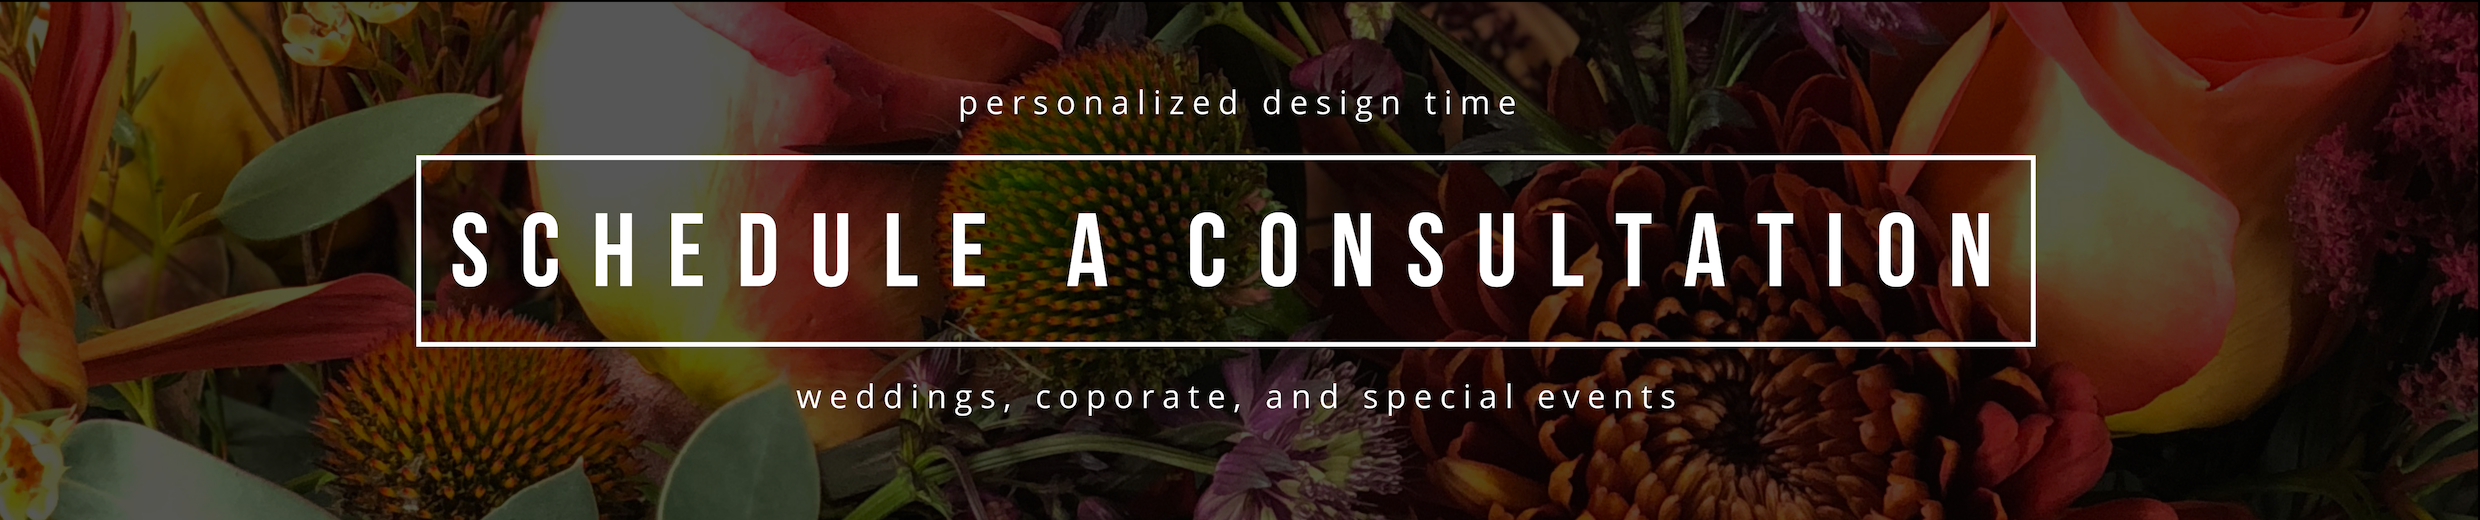 Schedule a consultation (1).png